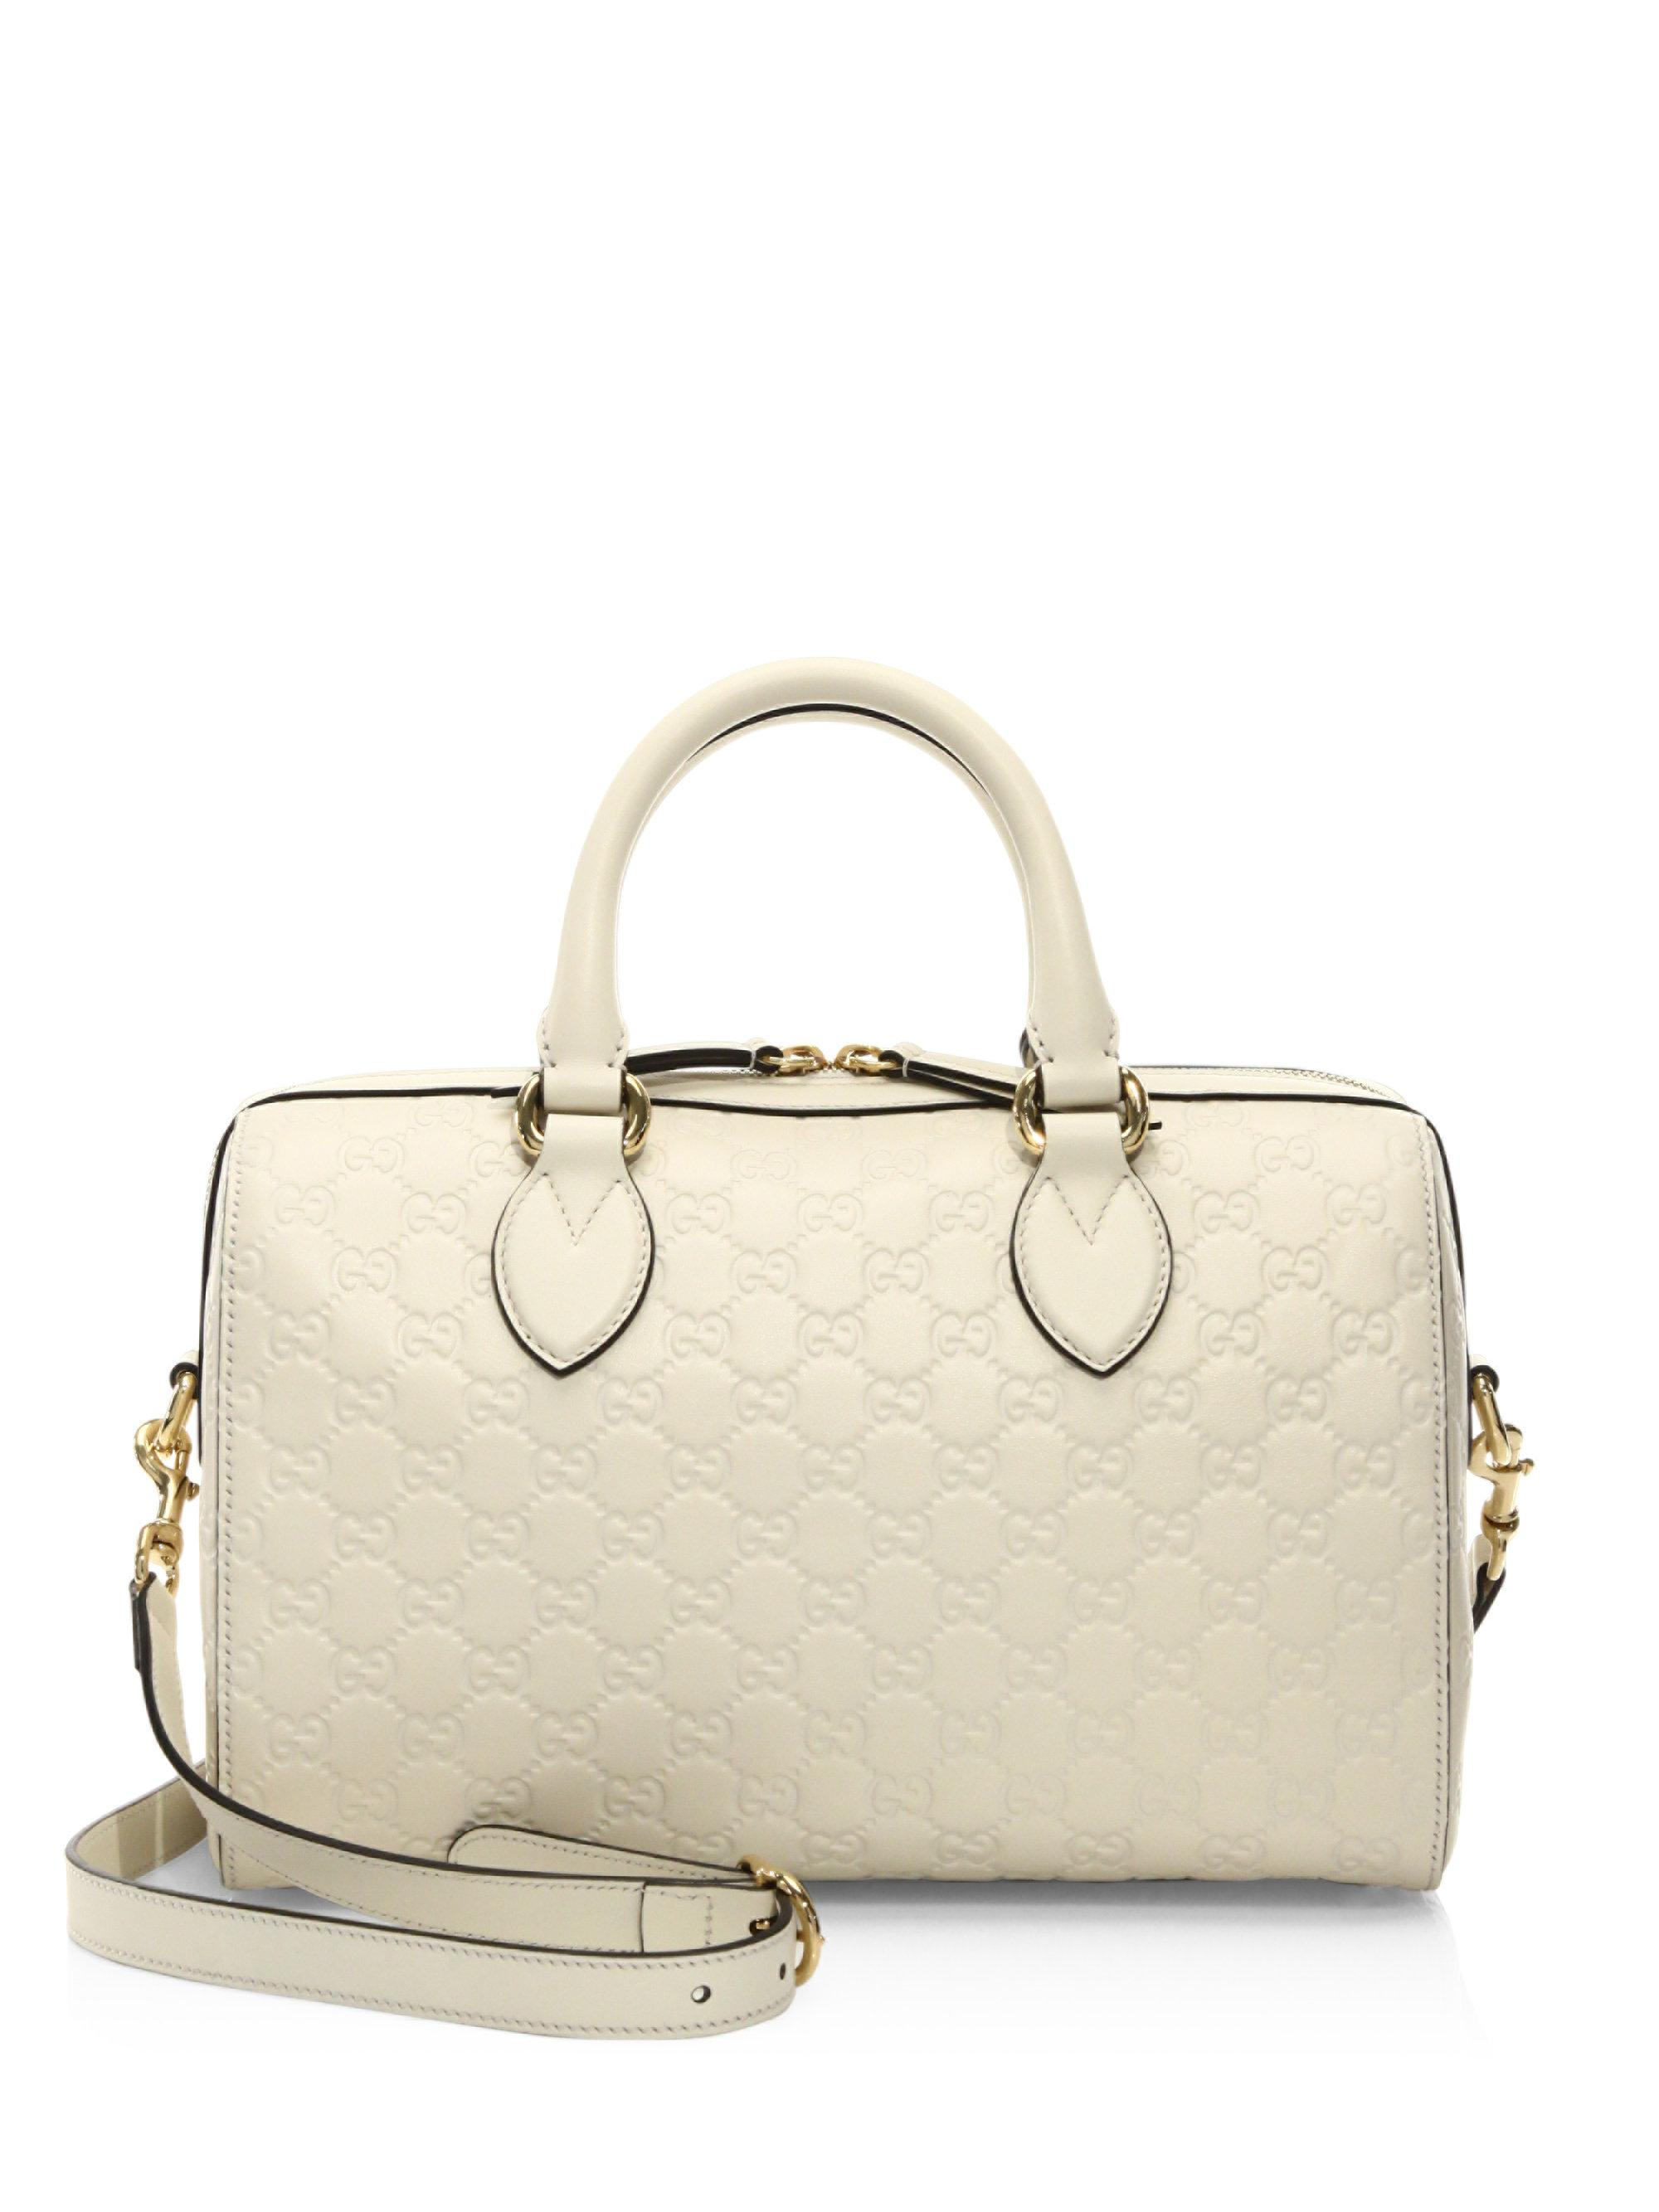 Lyst - Gucci Medium Soft Signature Leather Boston Bag in White 33353992c72c2